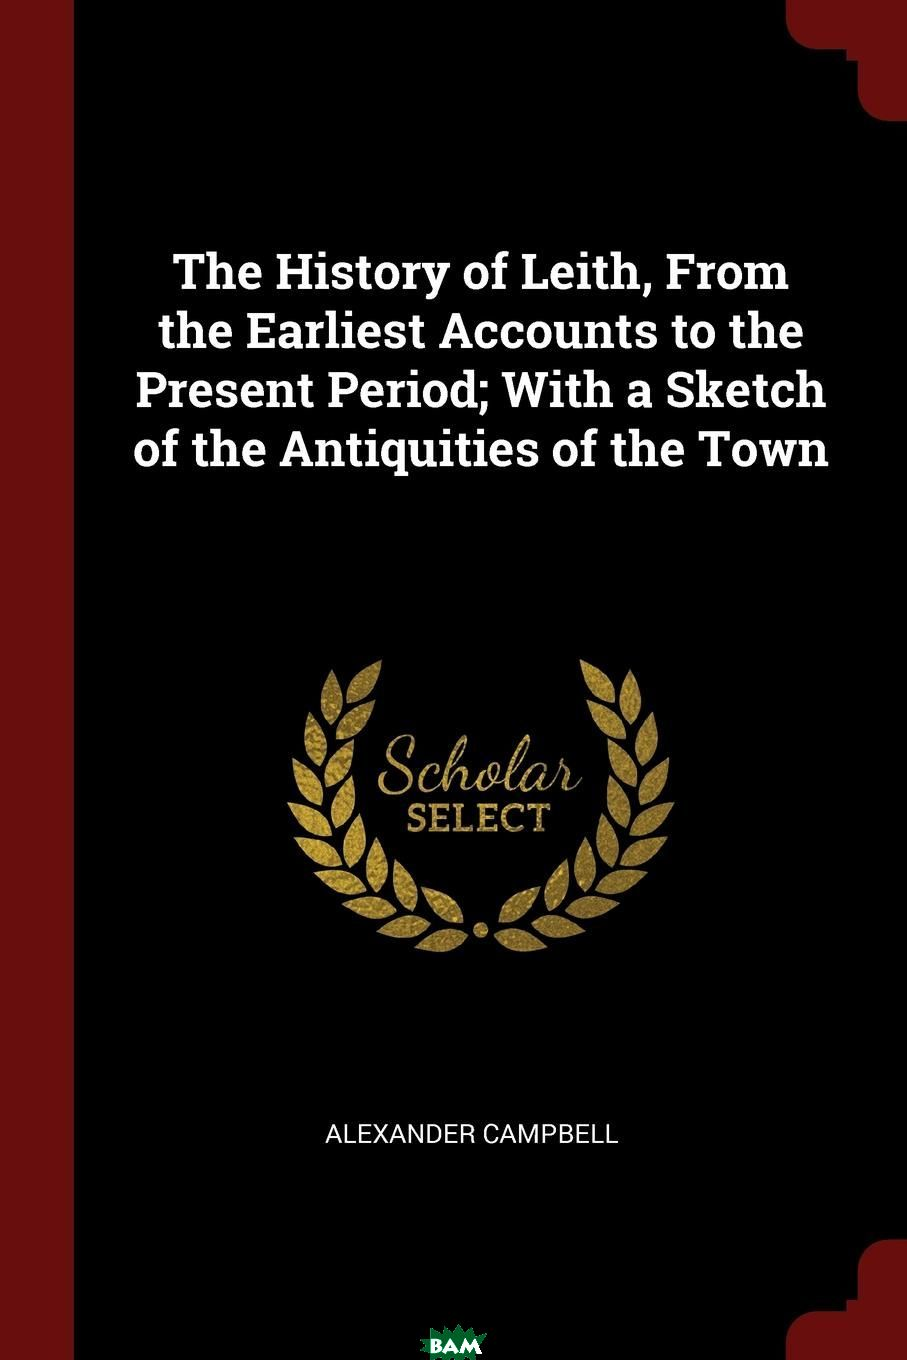 The History of Leith, From the Earliest Accounts to the Present Period; With a Sketch of the Antiquities of the Town